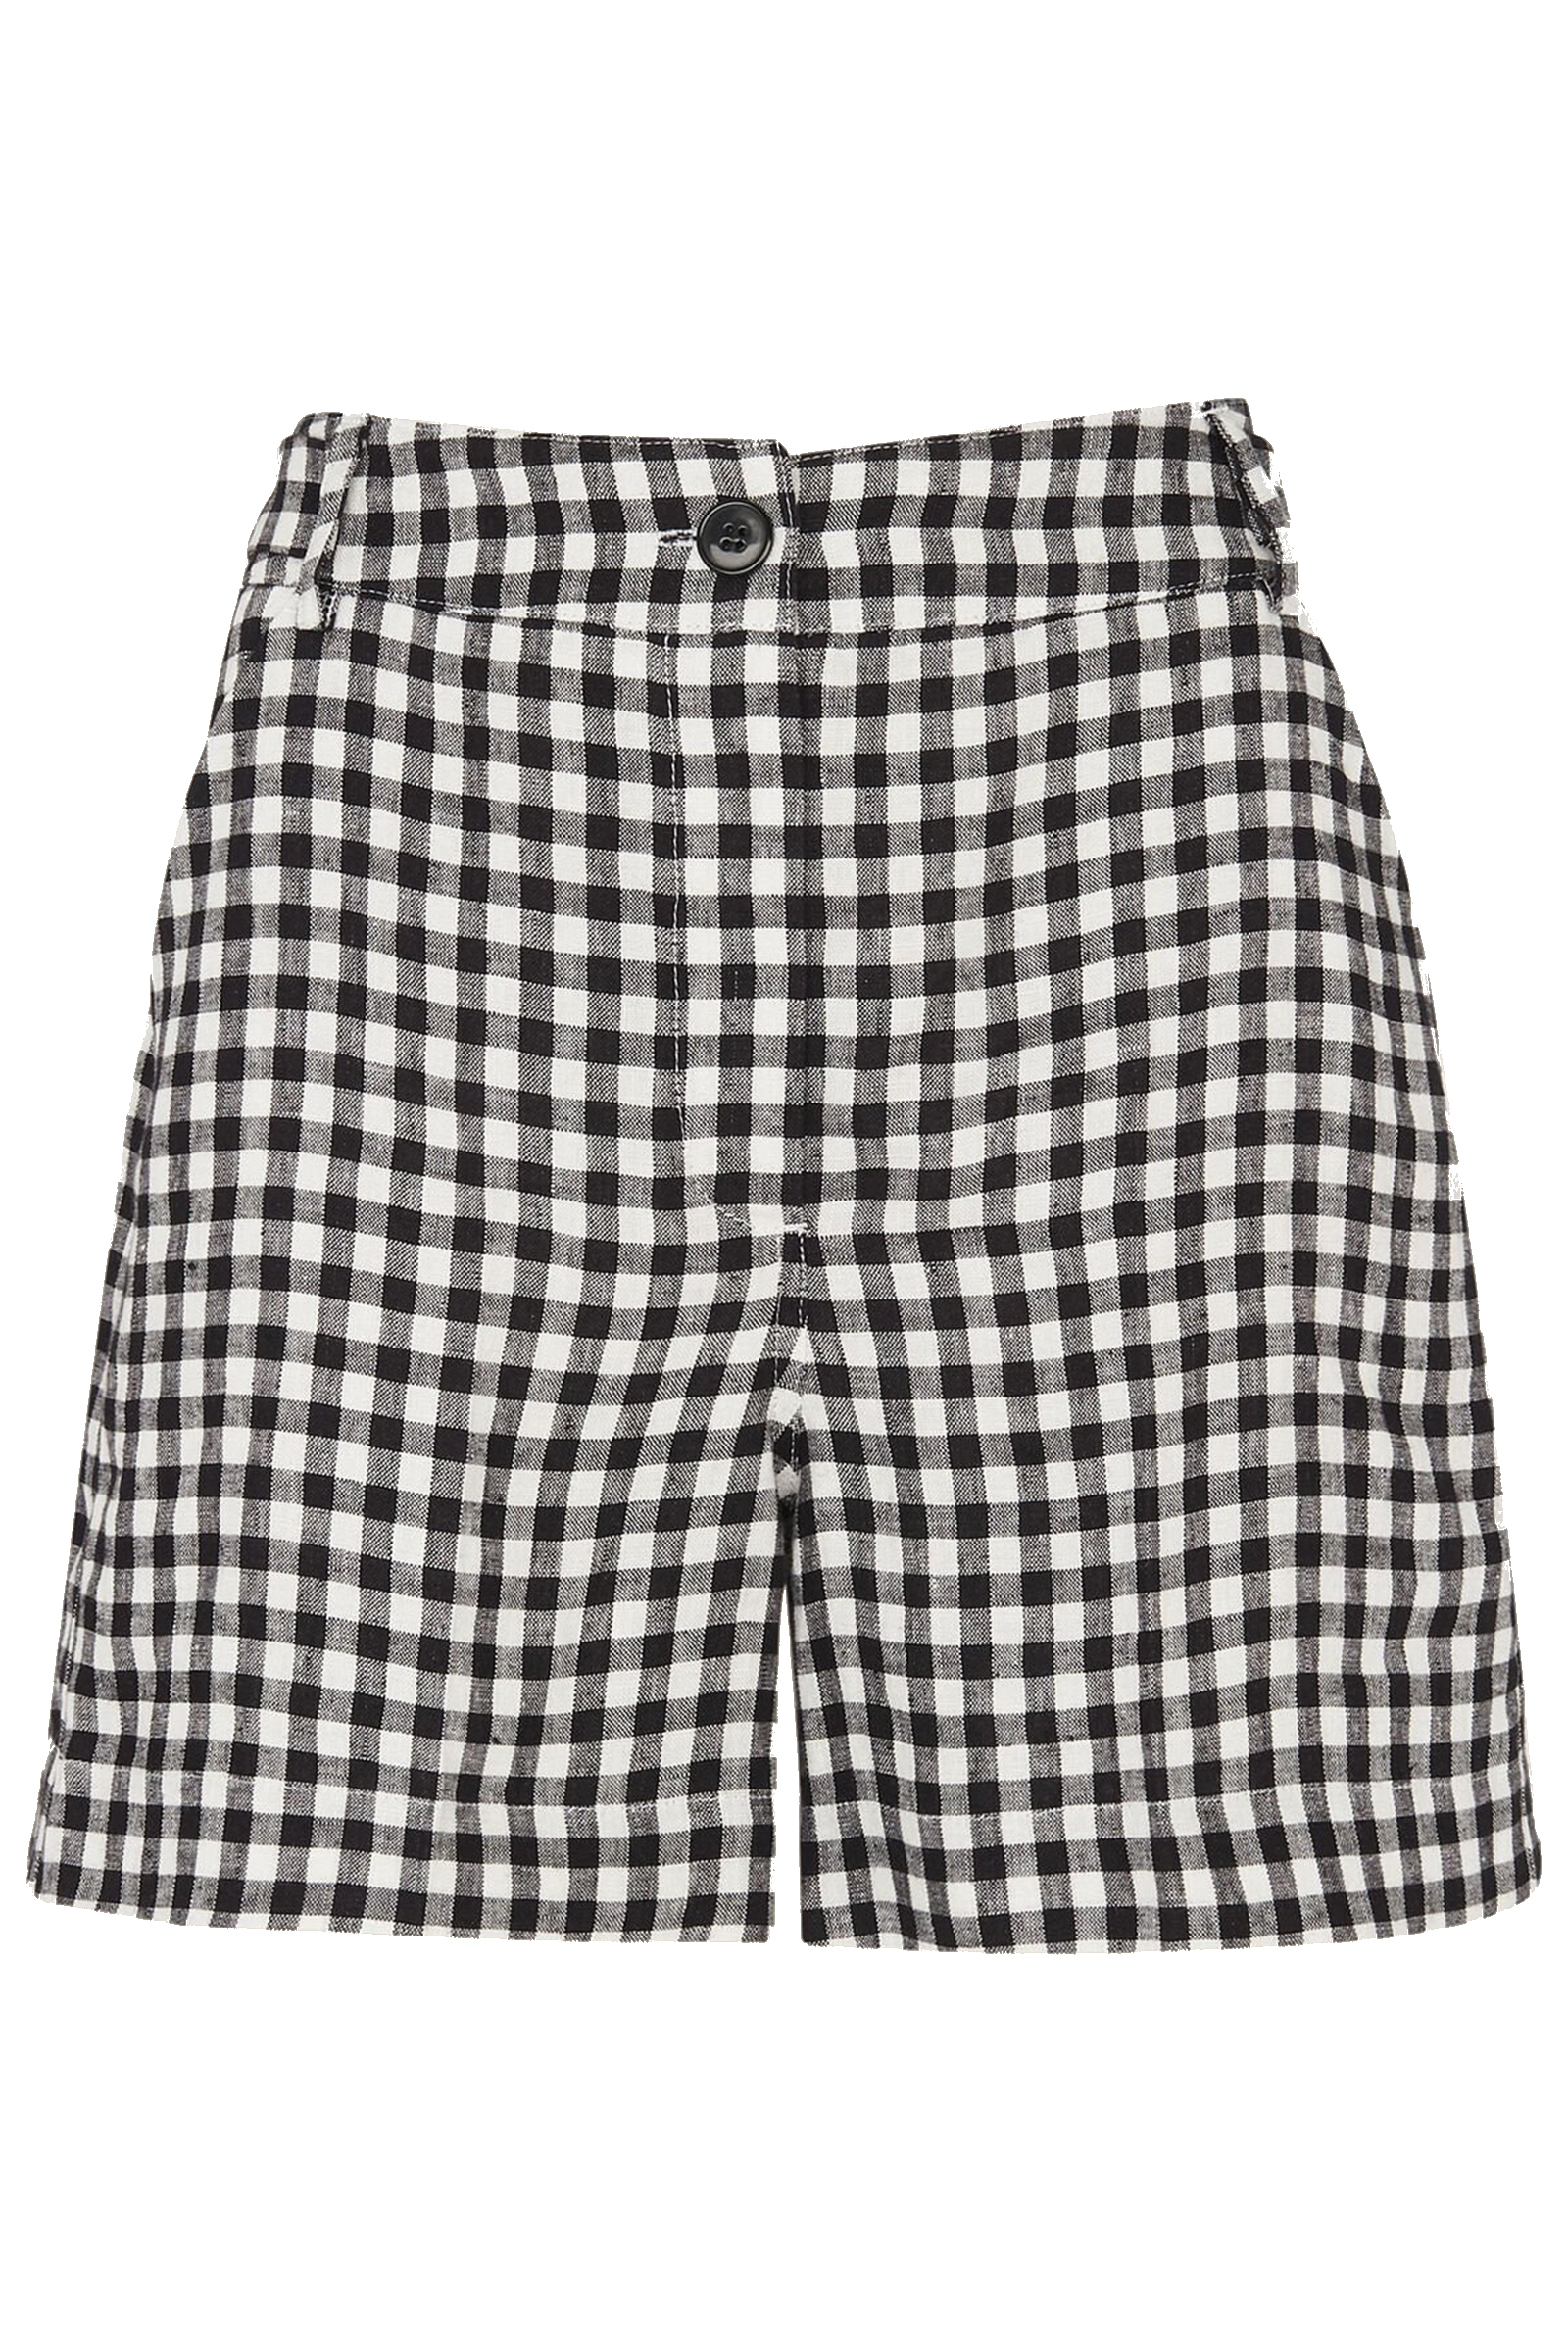 Whistles-Gingham-Shorts